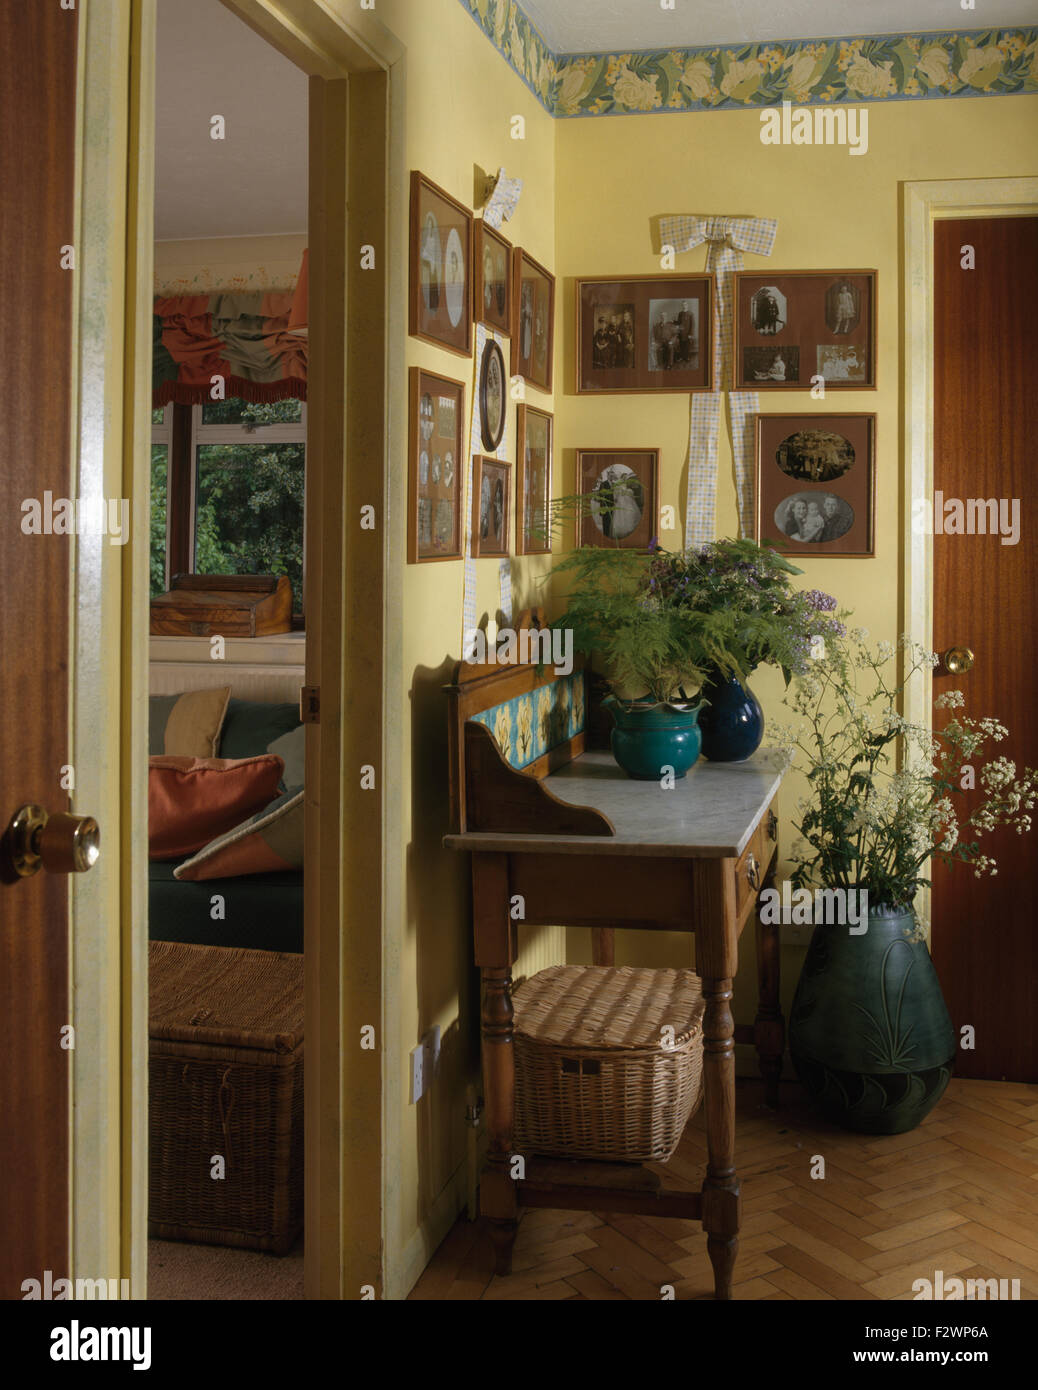 Group of framed photographs and wallpaper border in pale yellow nineties hall with an Edwardian washstand - Stock Image